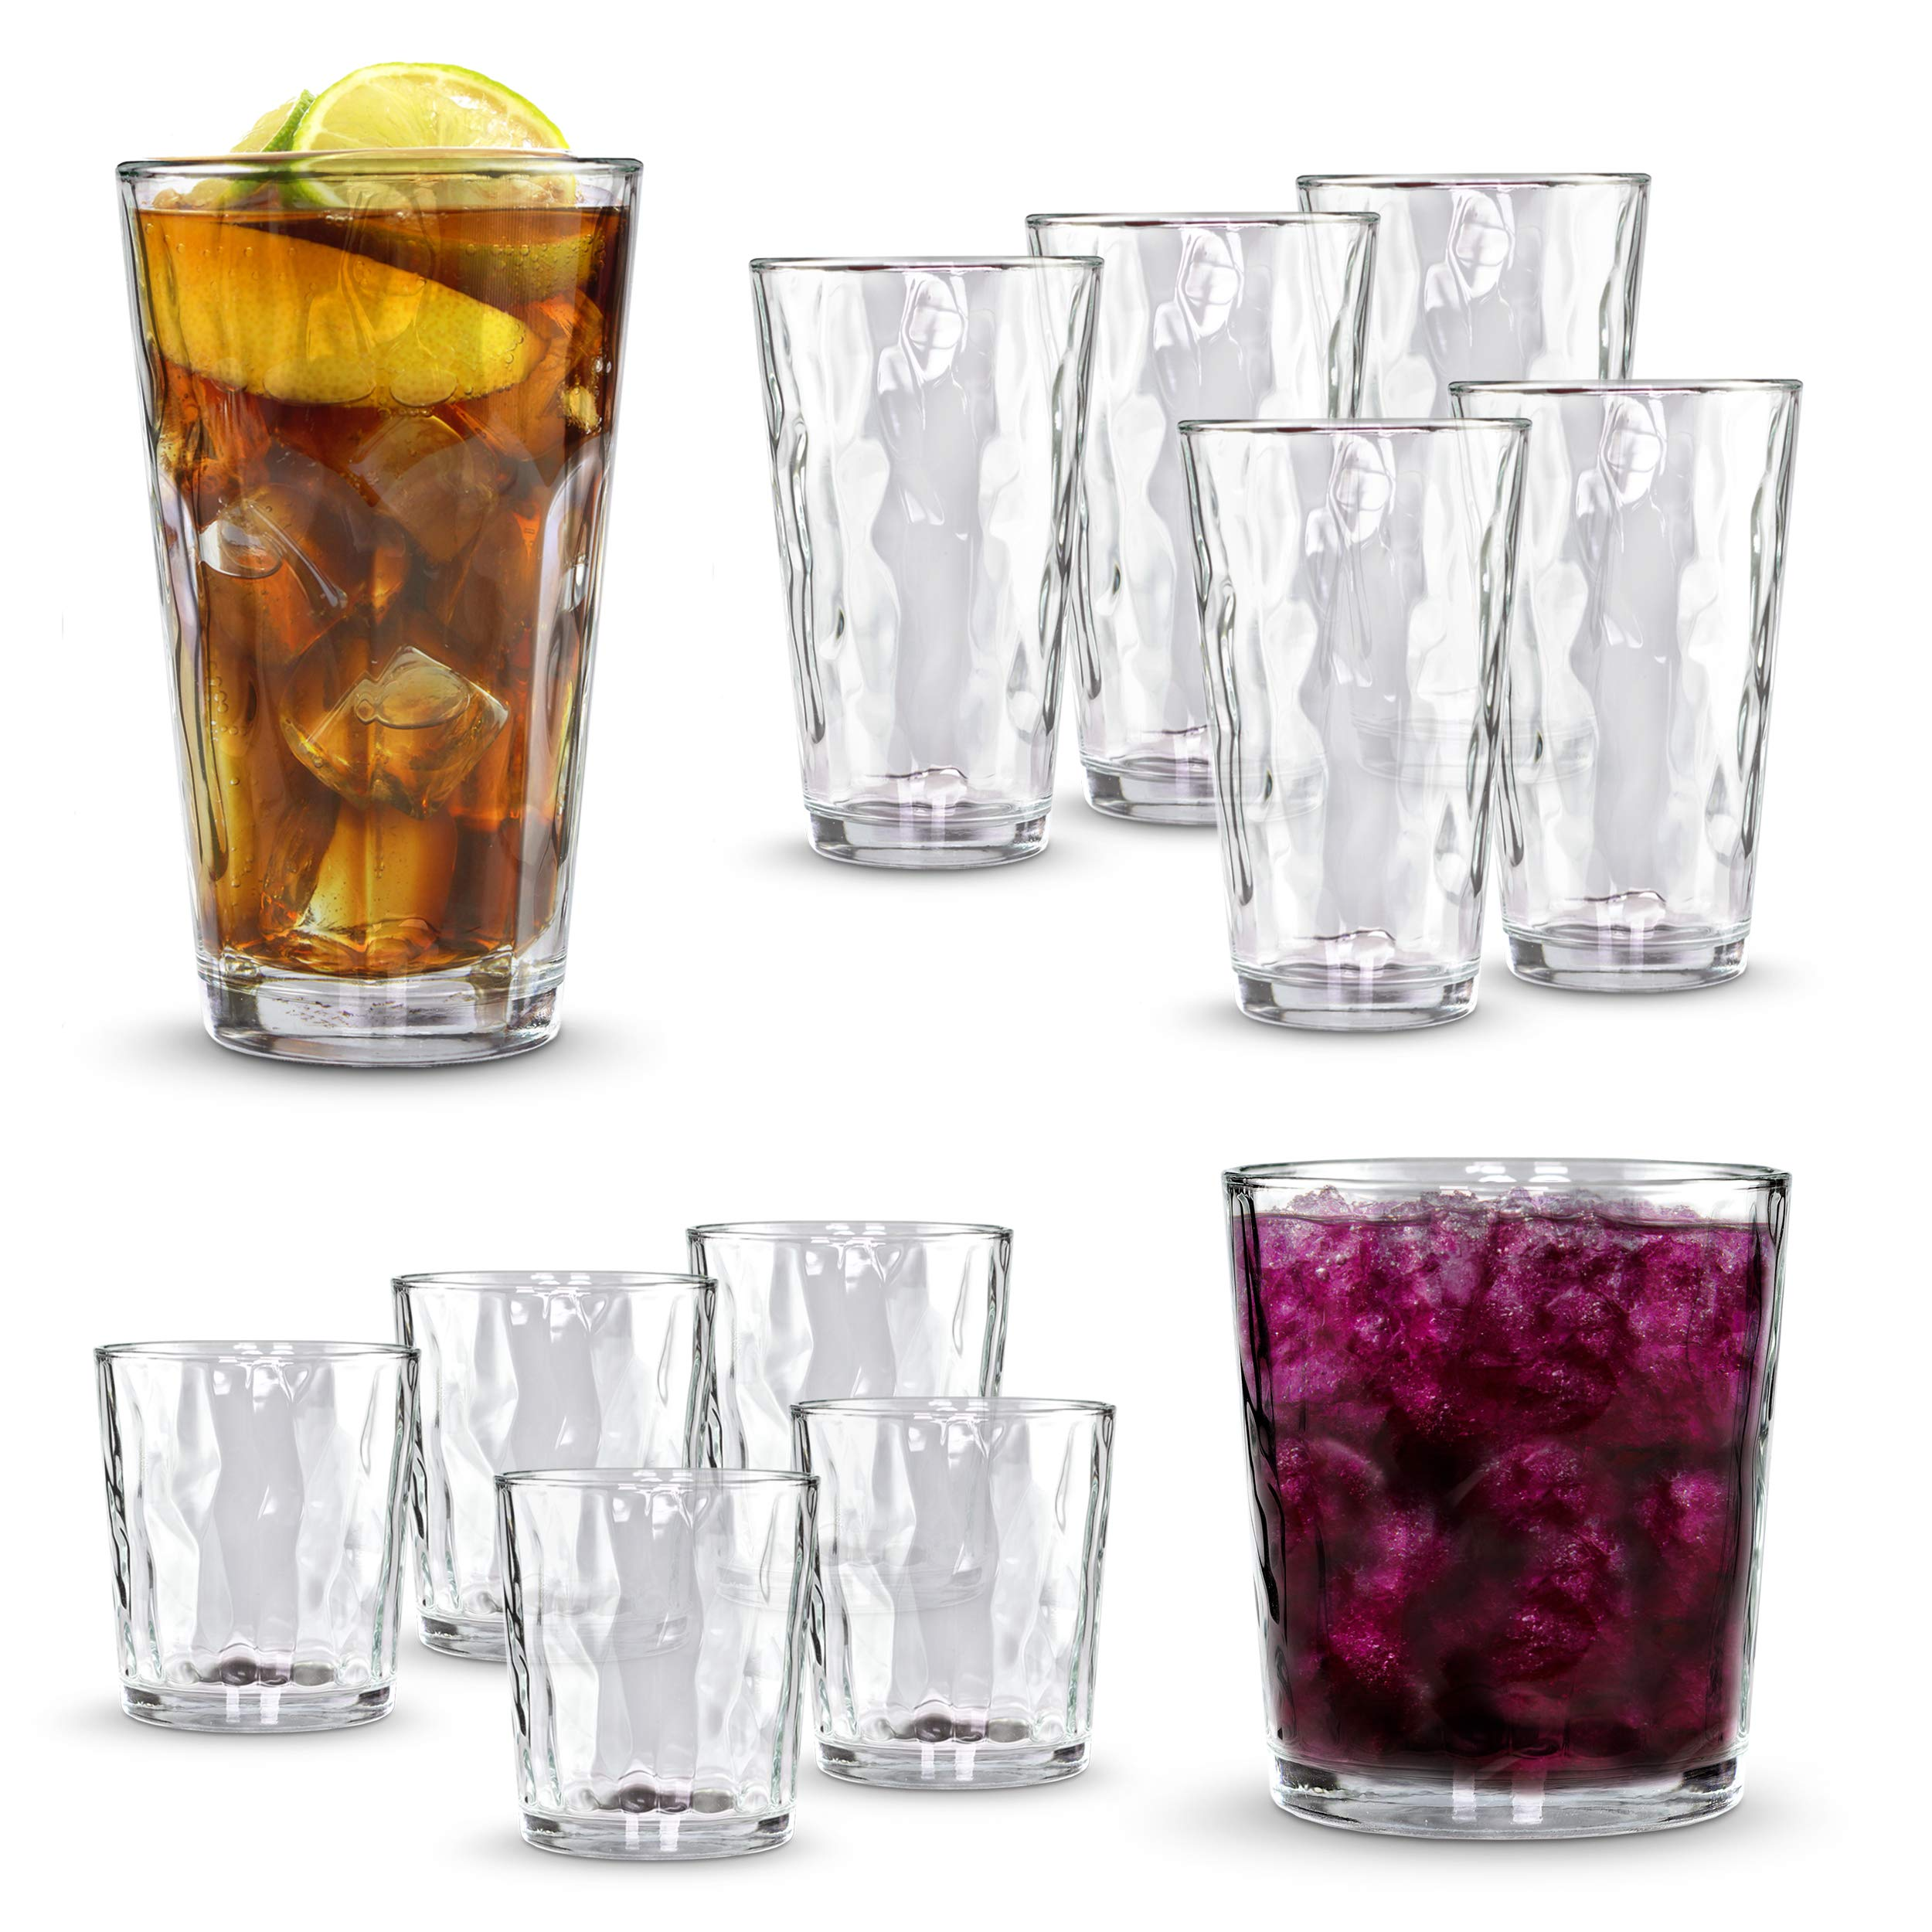 Clear Drinking Glass 12-pc Set - 6 Heavy Based Highball and 6 Double Old Fashioned Glassware for Whiskey, Scotch, Juice - Ideal for Dinner, Parties, and Special Events